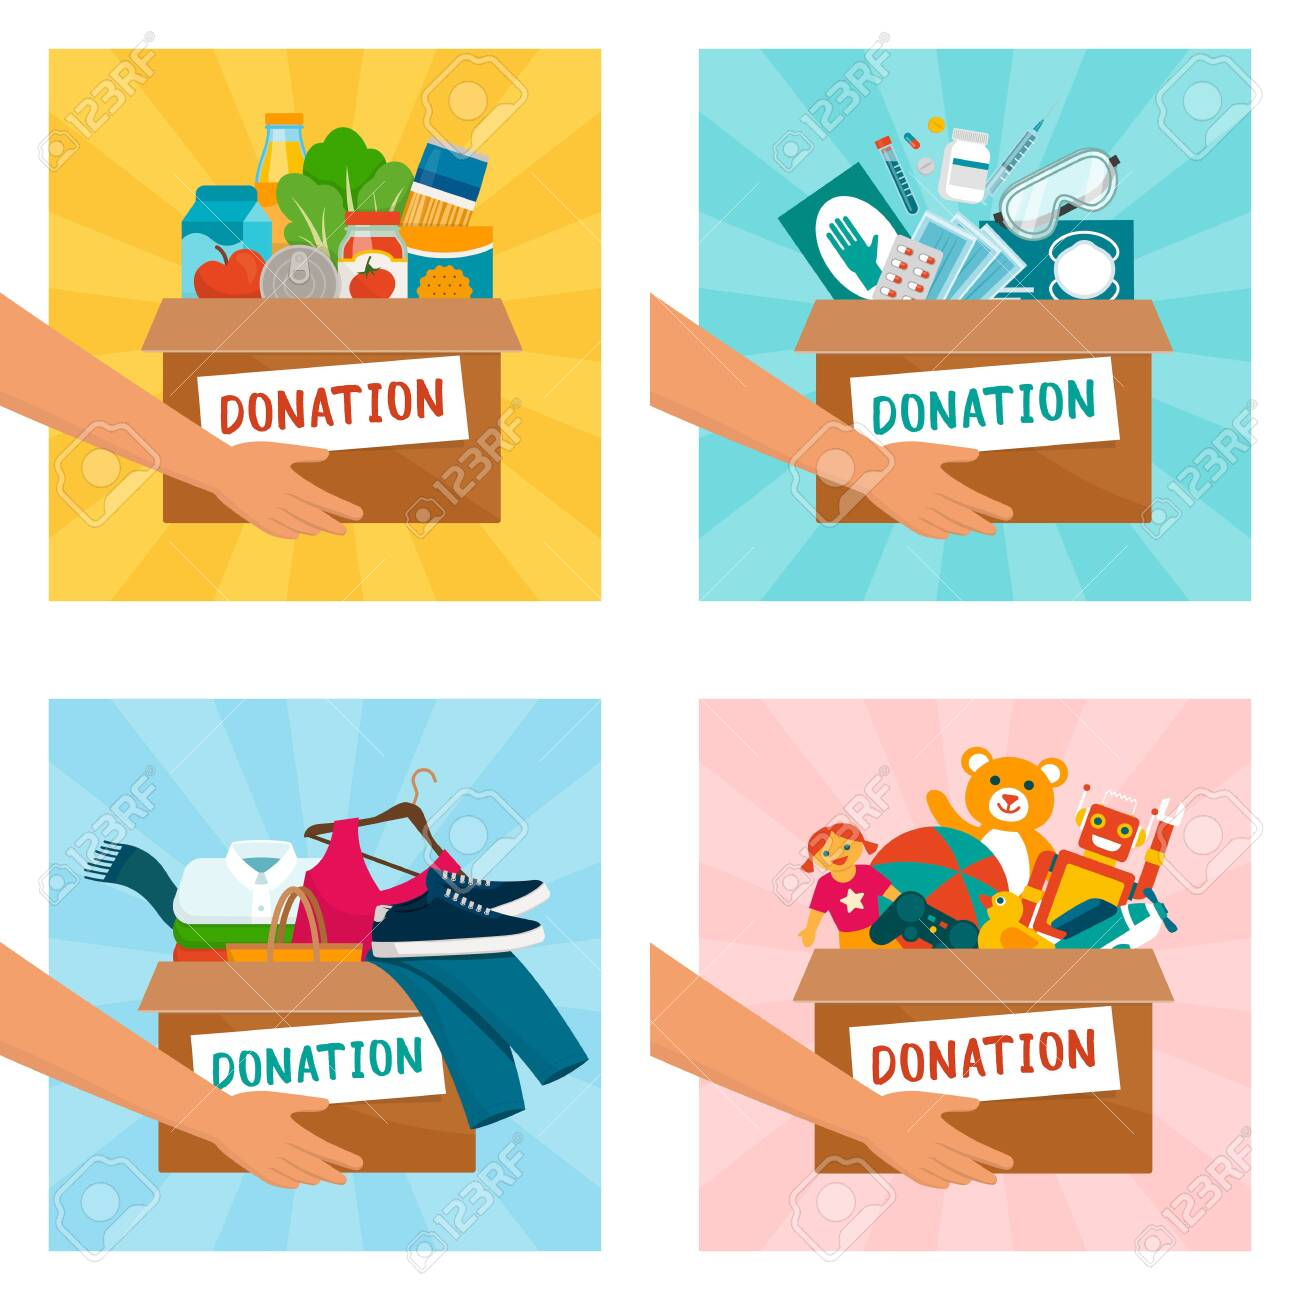 Volunteer holding donation boxes with food, medical equipment, clothing and toys - 146948570